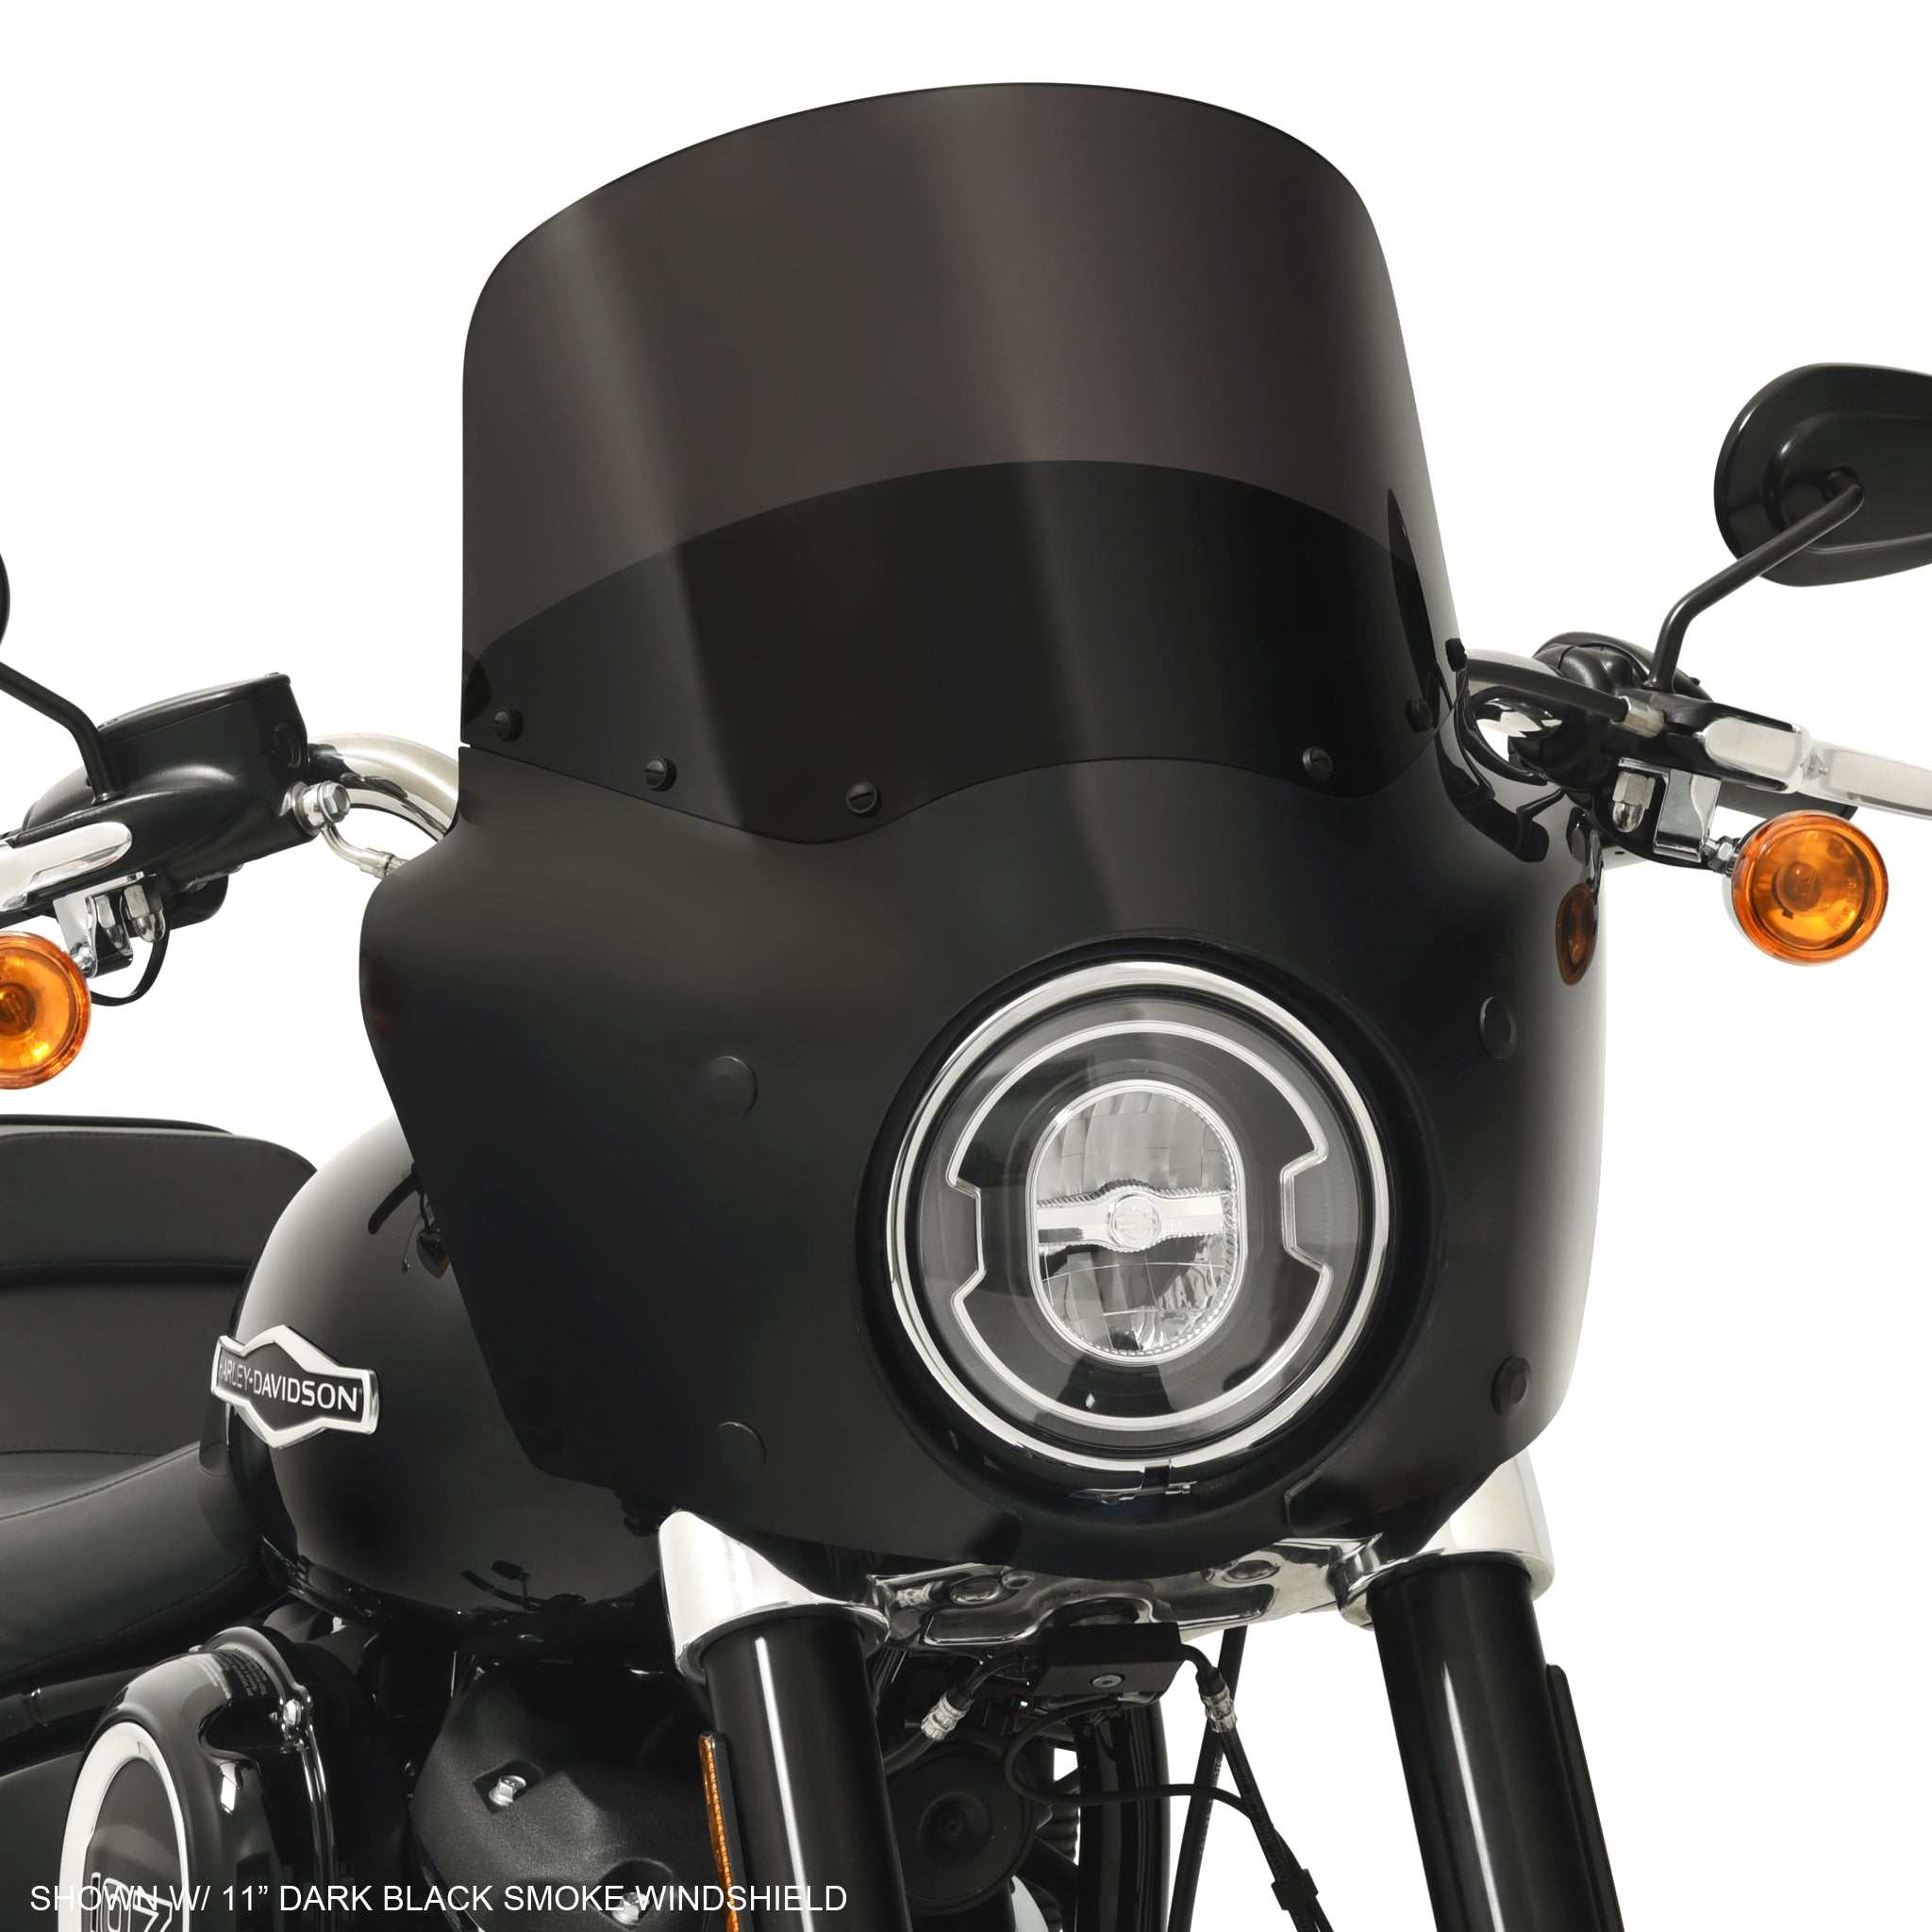 Road Warrior fairing on a 2018 Harley-Davidson FLSB Sport Glide